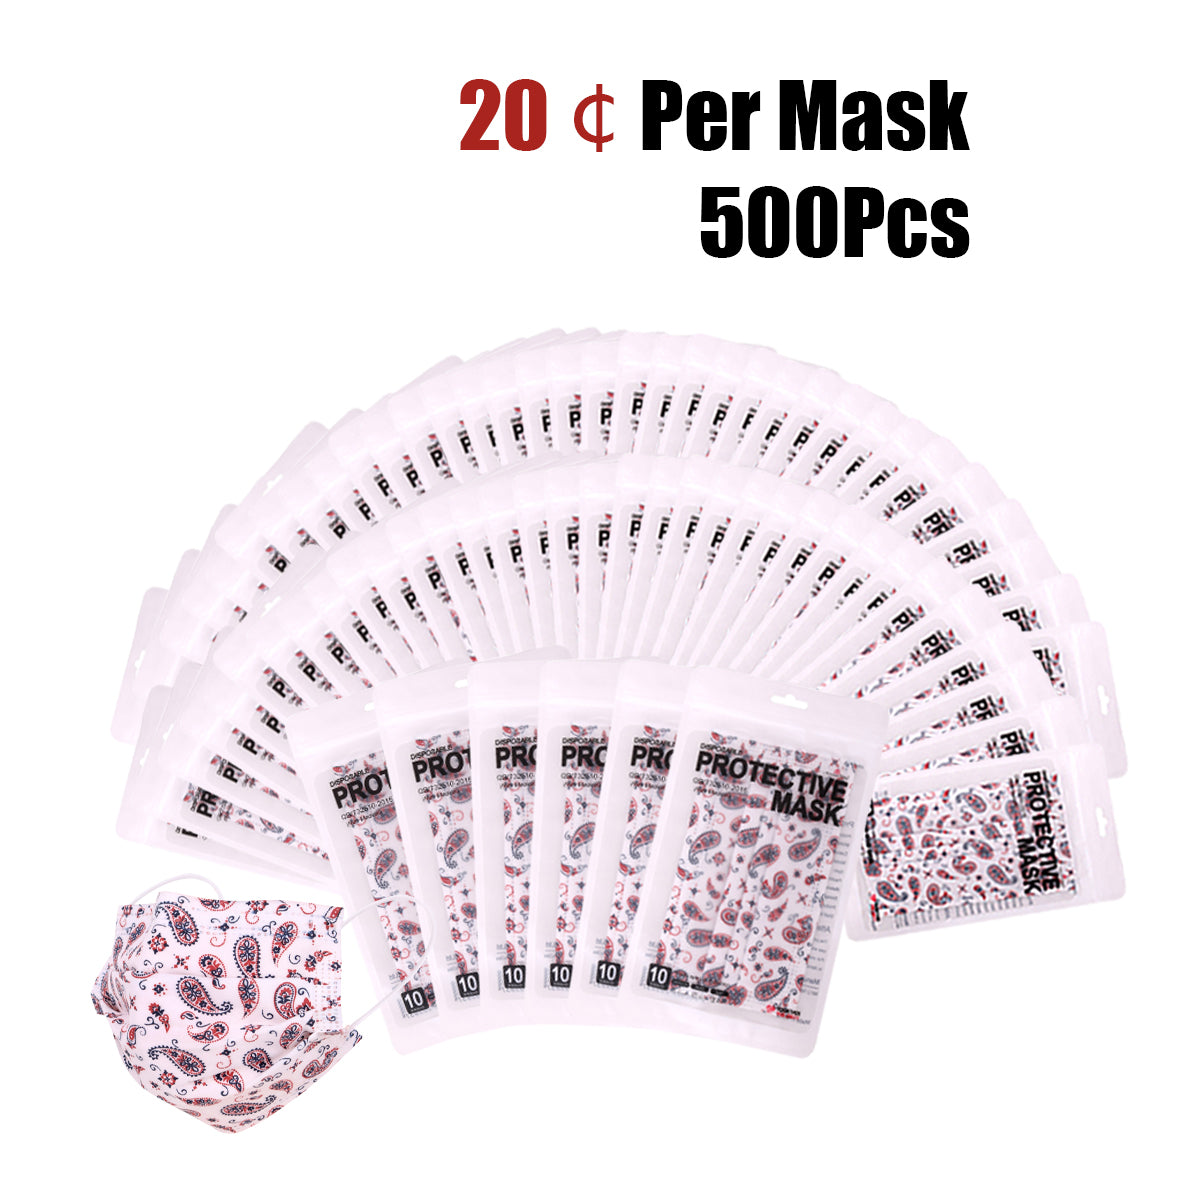 500Pcs American Bling 10Pcs /Pack White Paisley Print 3Ply Disposable Face Masks